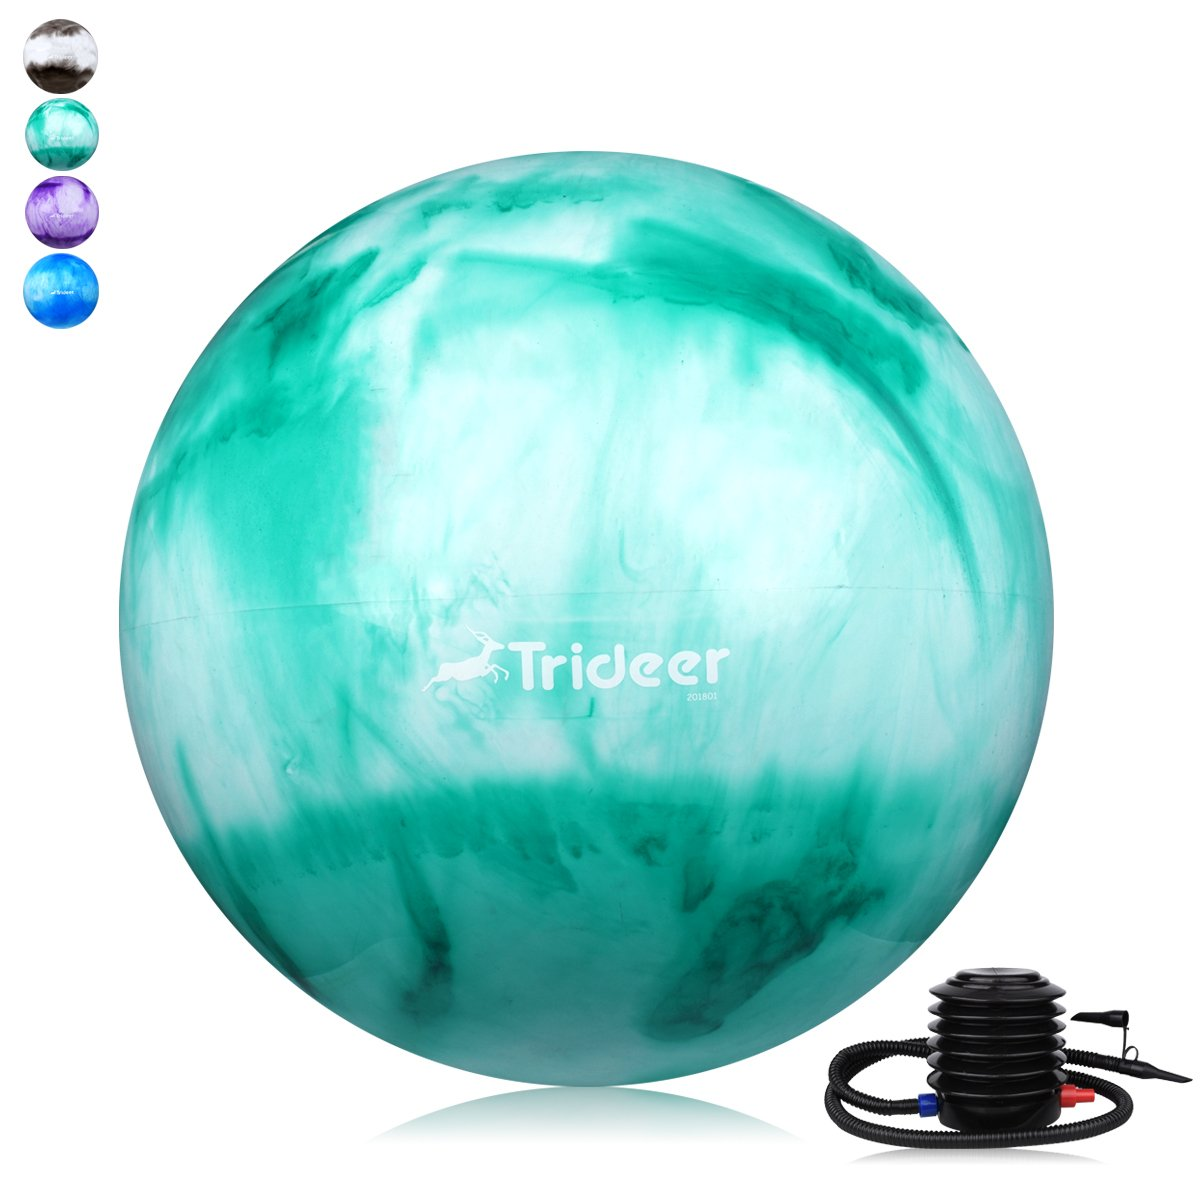 Trideer Exercise Ball (45-85cm) EXTRA THICK Yoga Ball Chair, Anti-Burst Heavy Duty Stability Ball Supports 2200lbs, Birthing Ball Quick Pump (Office & Home & Gym) (Green&White, 75cm)